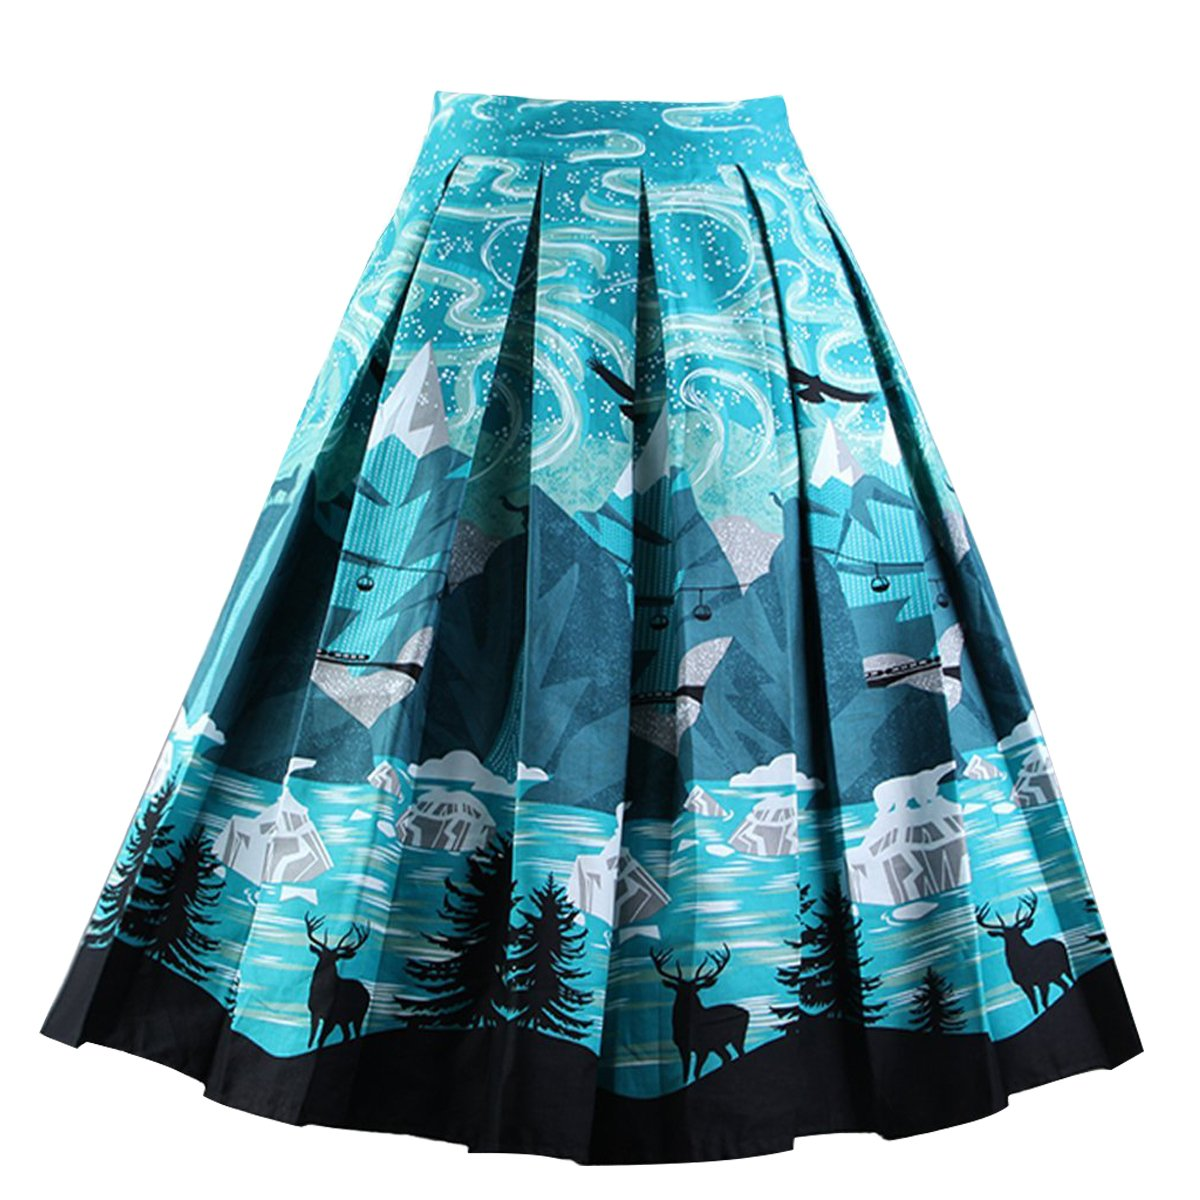 Girstunm Women's Pleated Vintage Skirt Floral Print A-Line Midi Skirts with Pockets Night-Sky XL